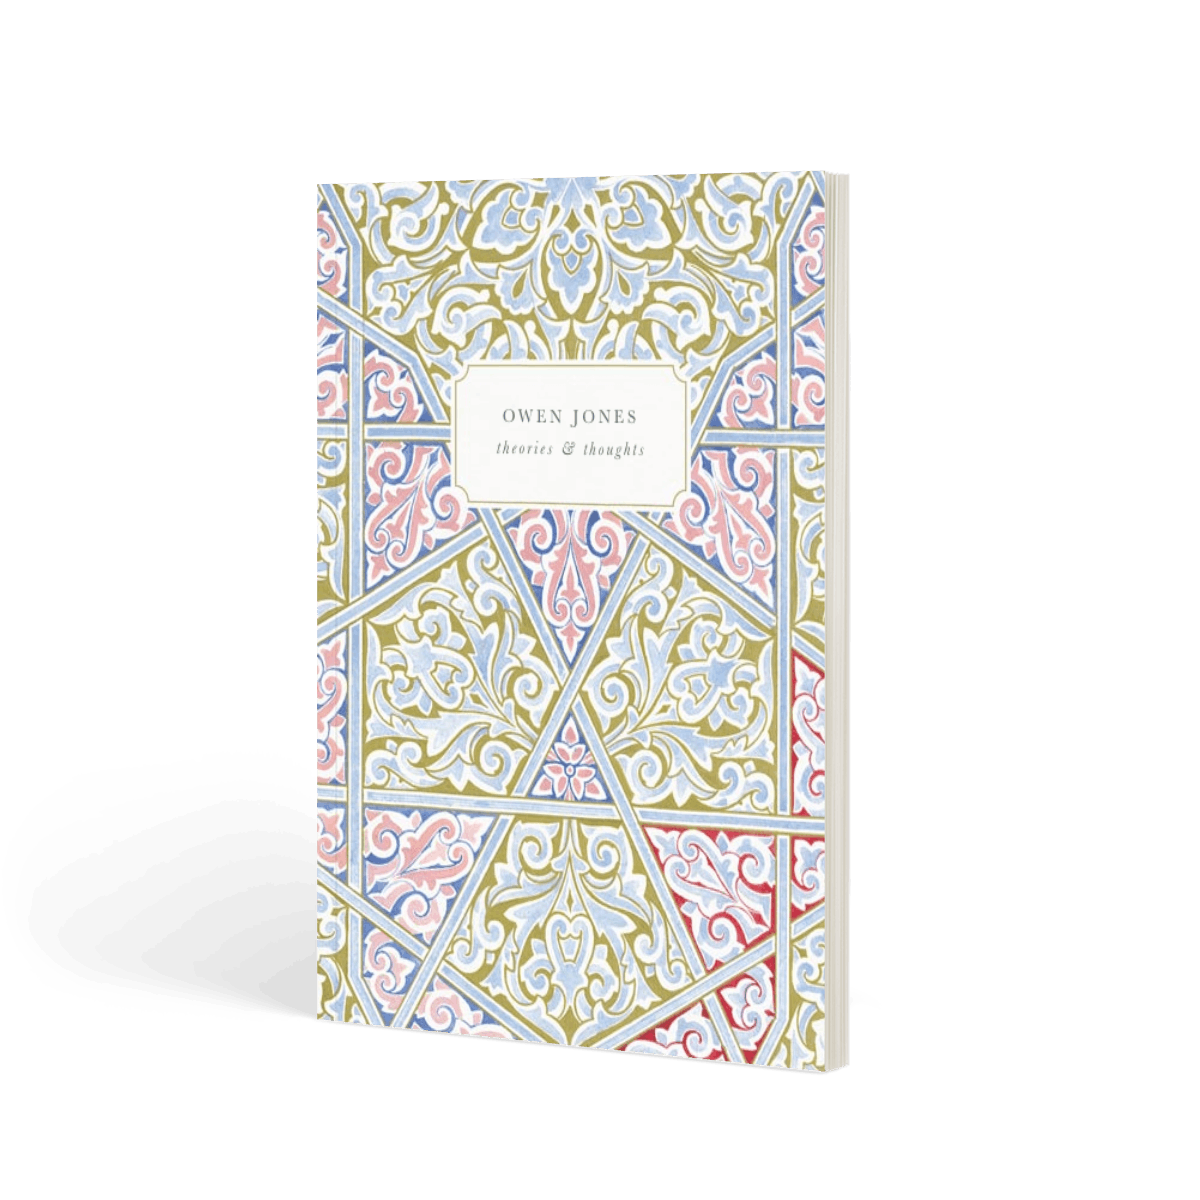 Https%3a%2f%2fwww.papier.com%2fproduct image%2f20848%2f6%2fpastel filigree 5323 front 1490032424.png?ixlib=rb 1.1